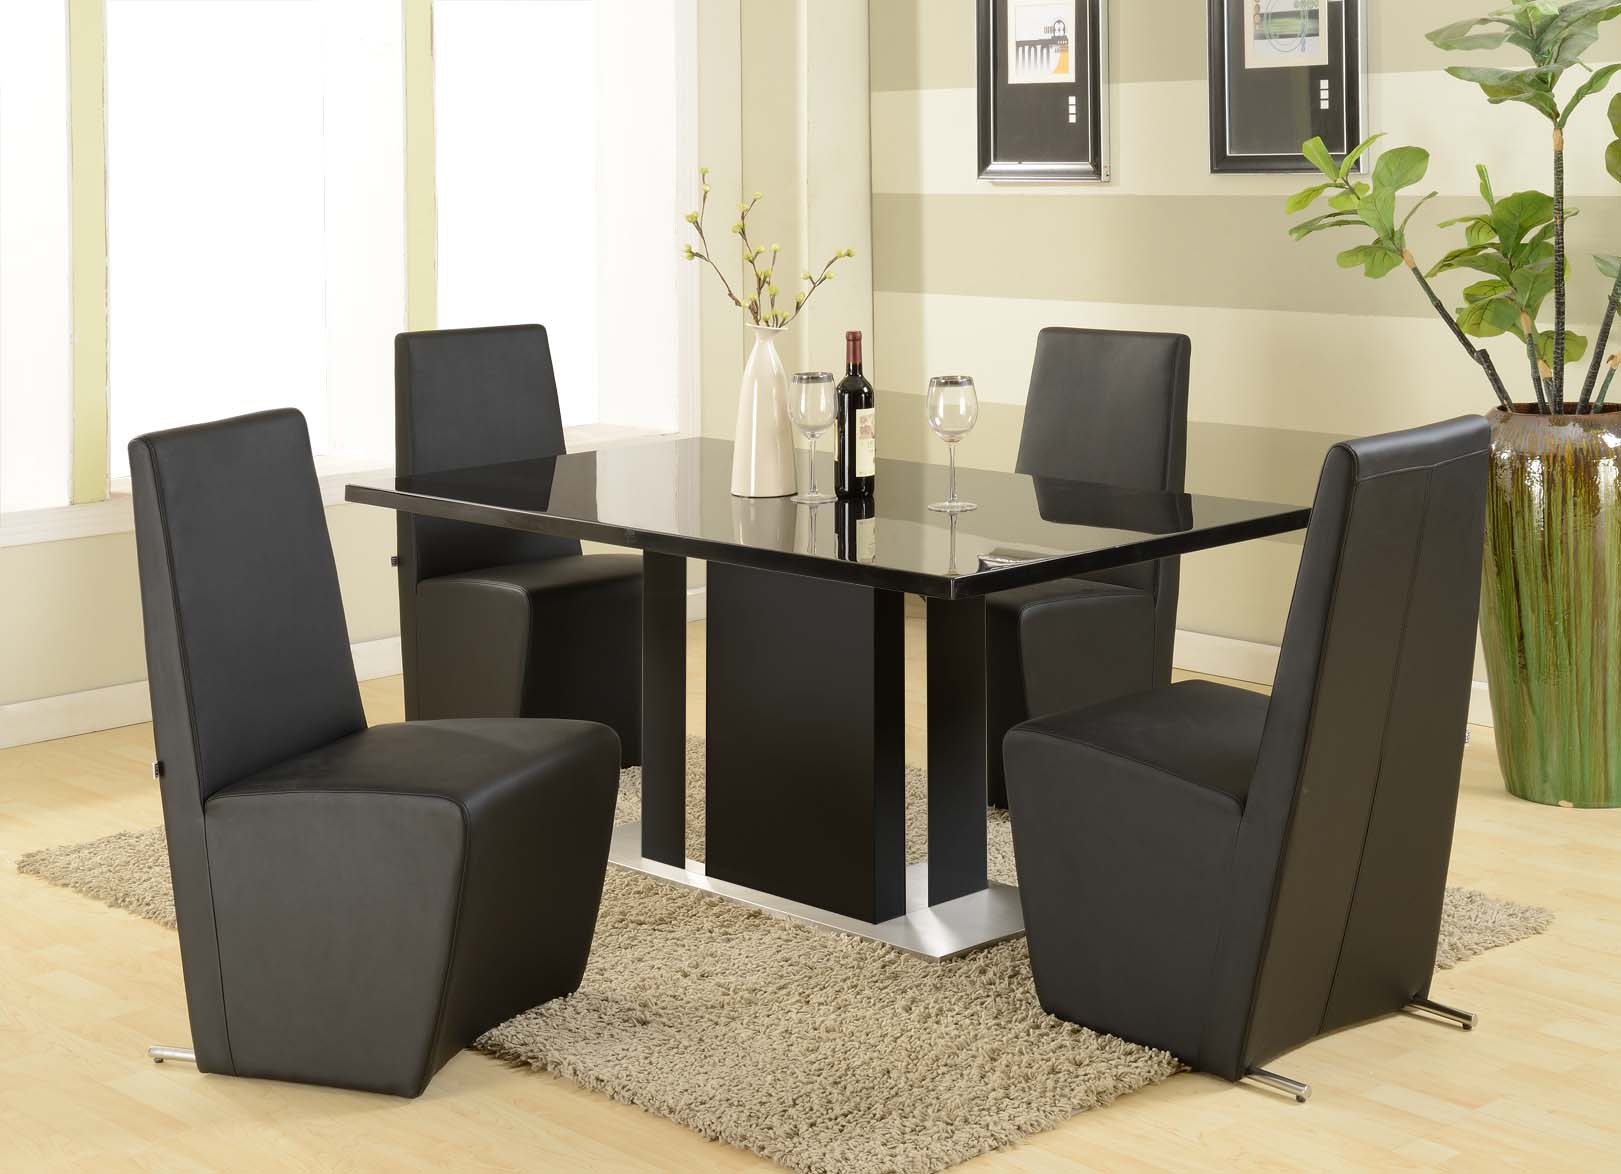 ... -ultra-modern-black-marble-dining-table-6-dining-chair-set-9889-p.jpg